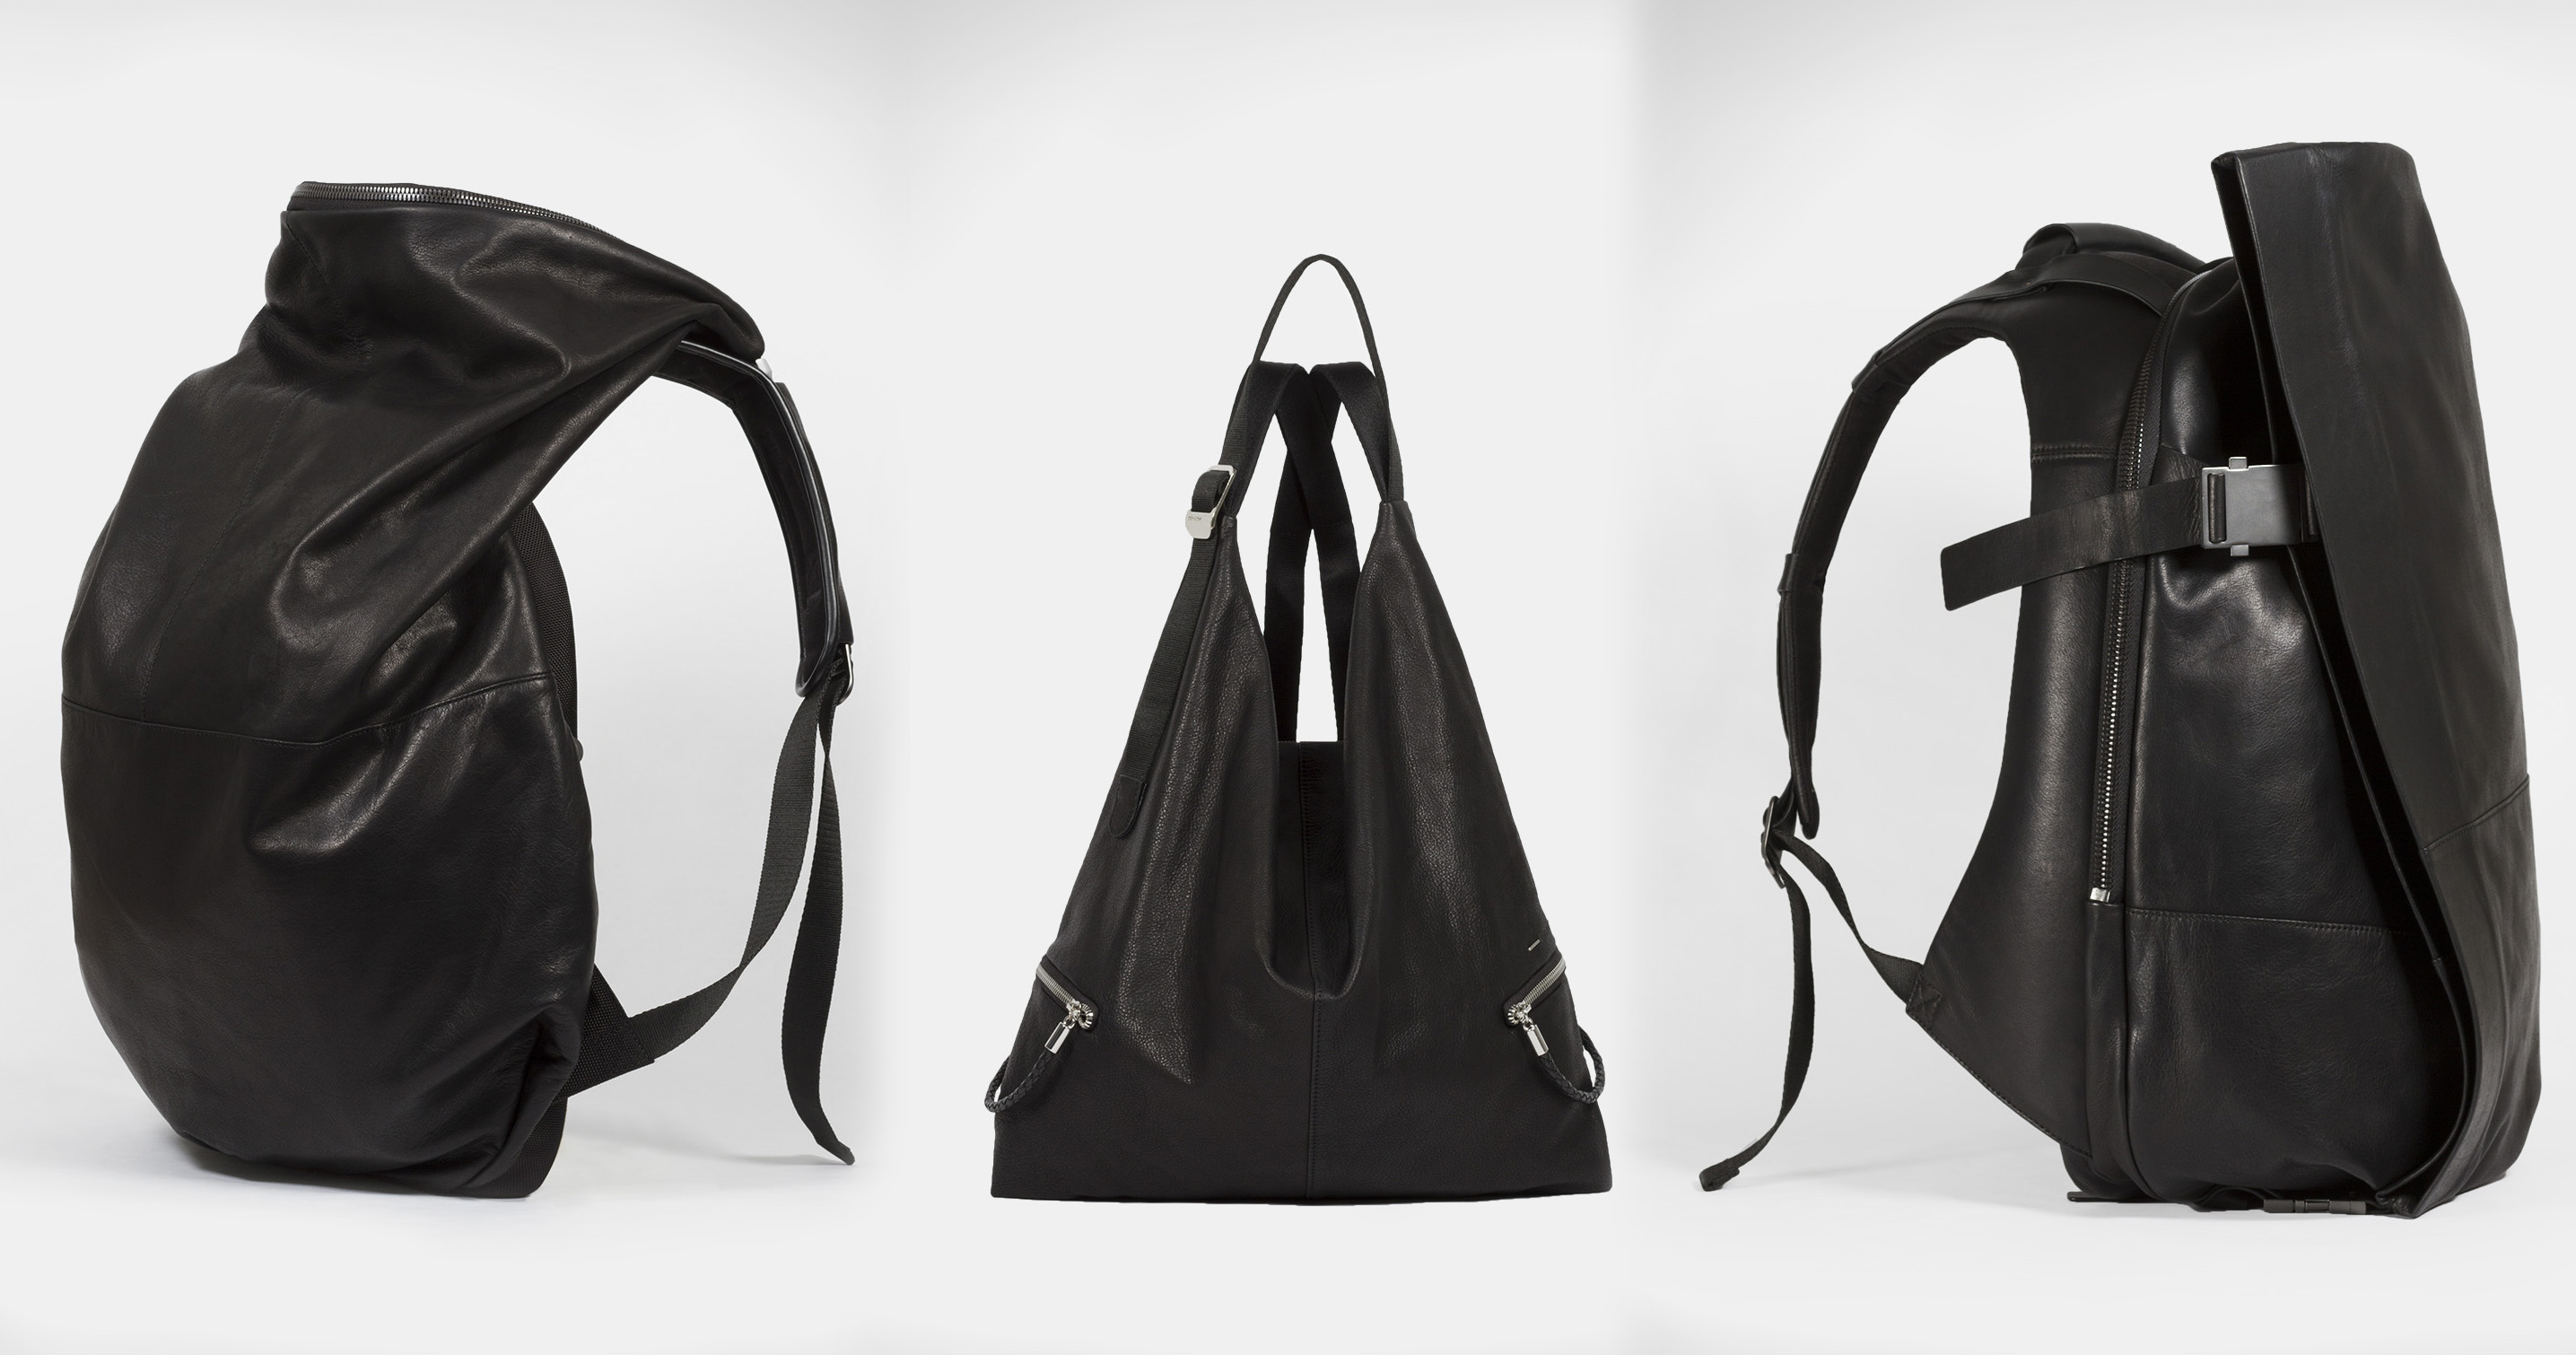 Côte&Ciel Launches Alias Leather Collection